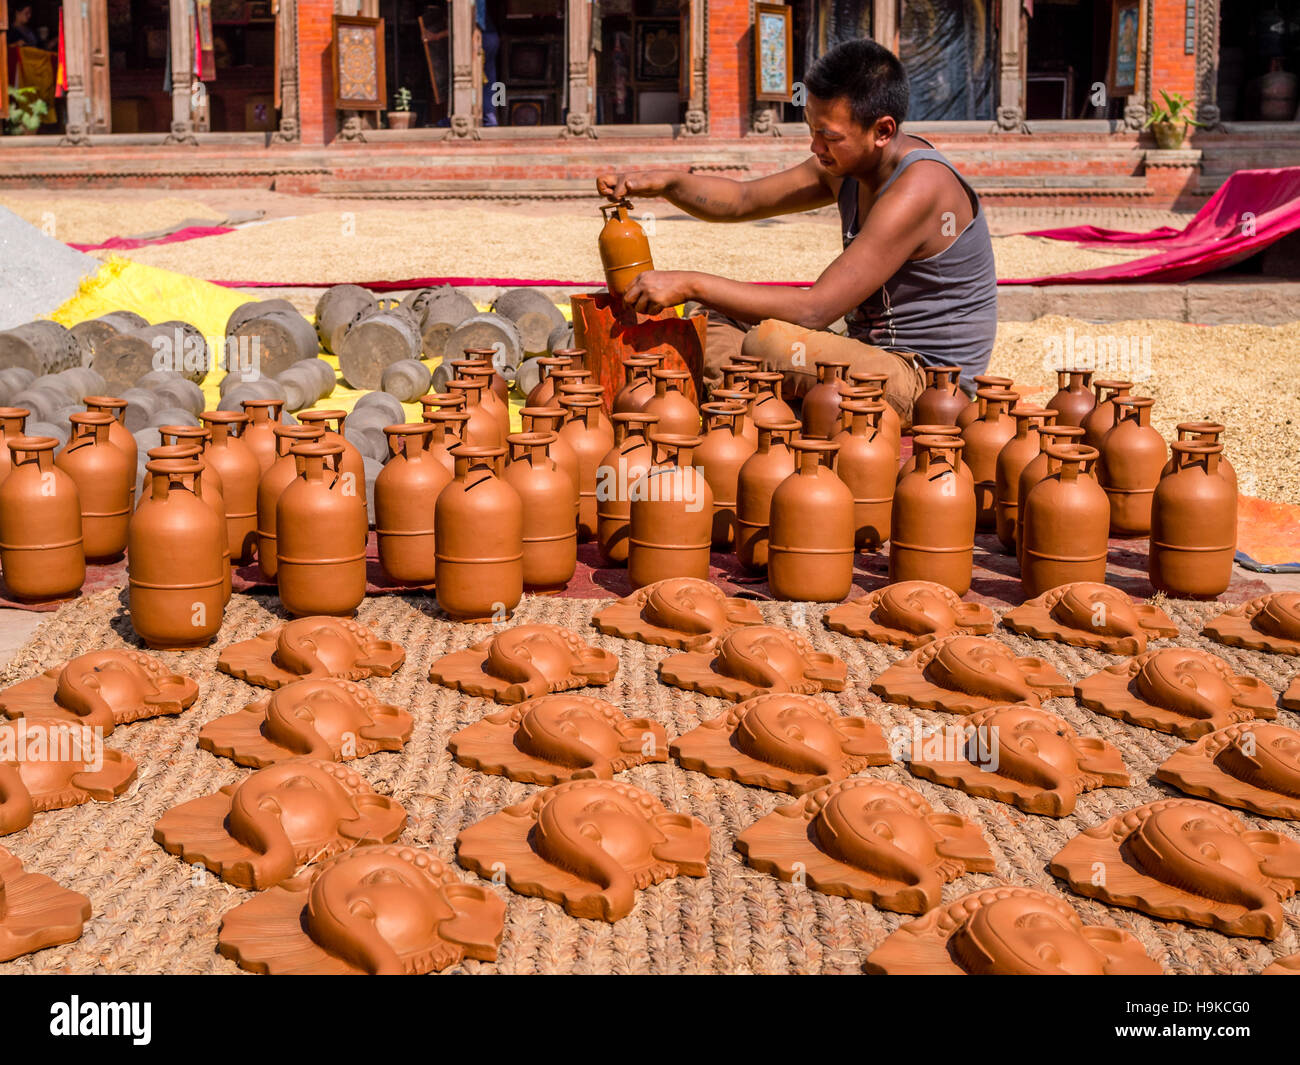 Handmade pottery in Bhaktapur's Pottery Square - Stock Image